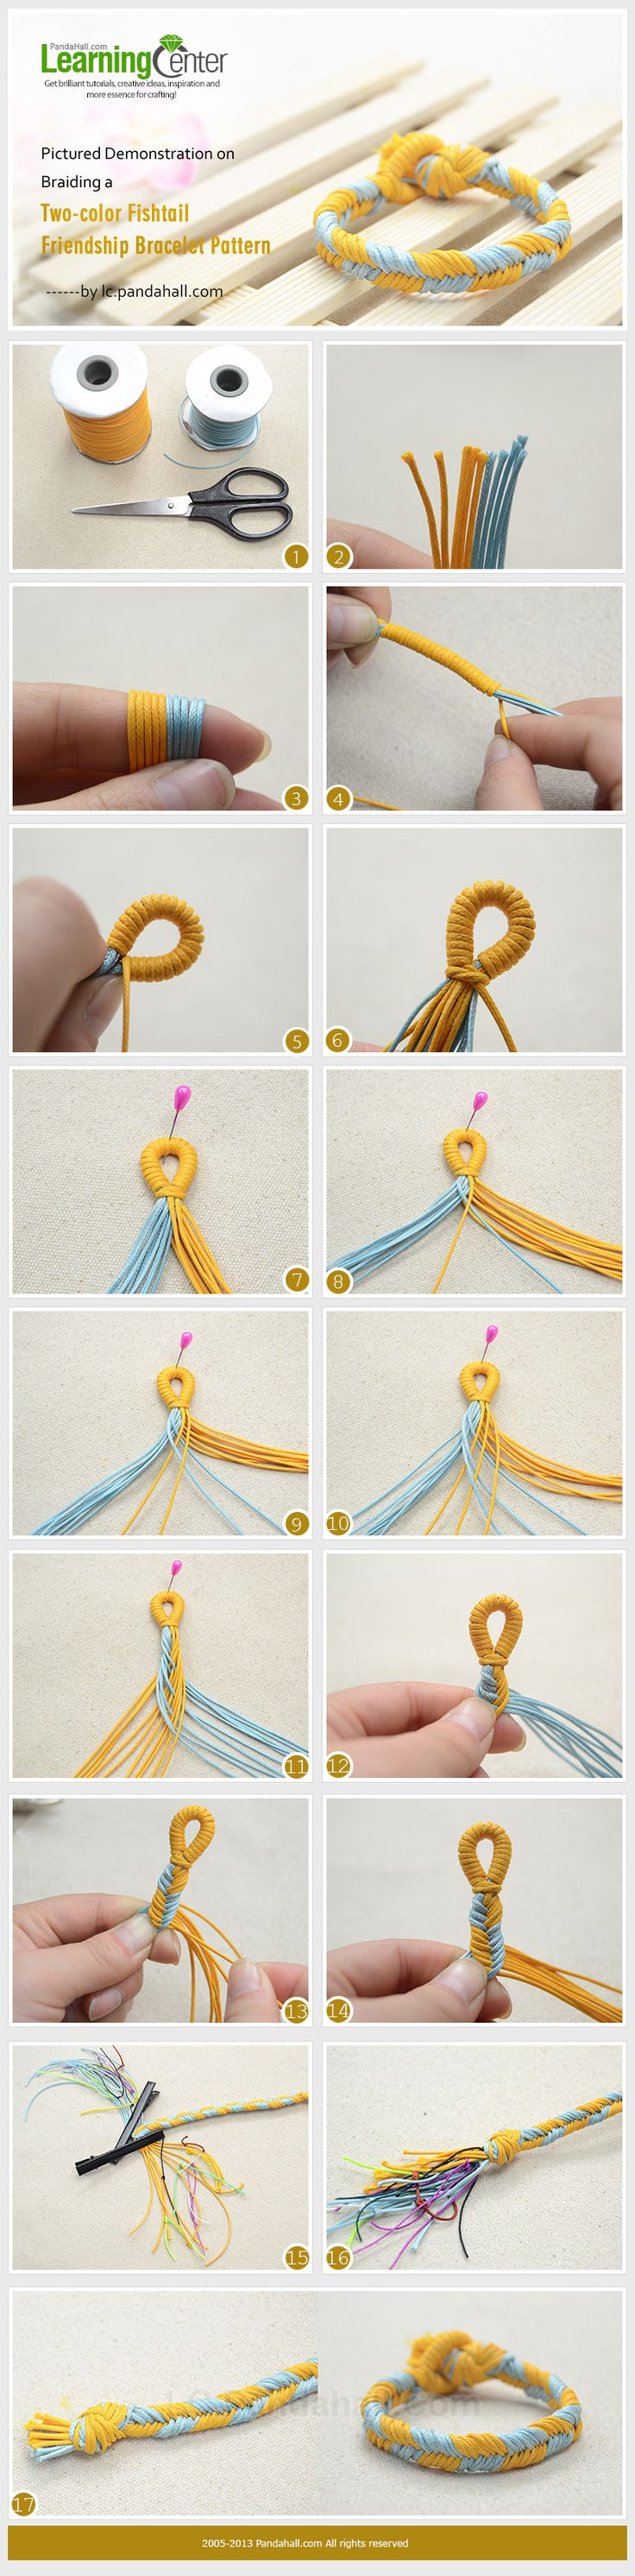 Braiding a Two-color Fishtail Friendship Bracelet Pattern